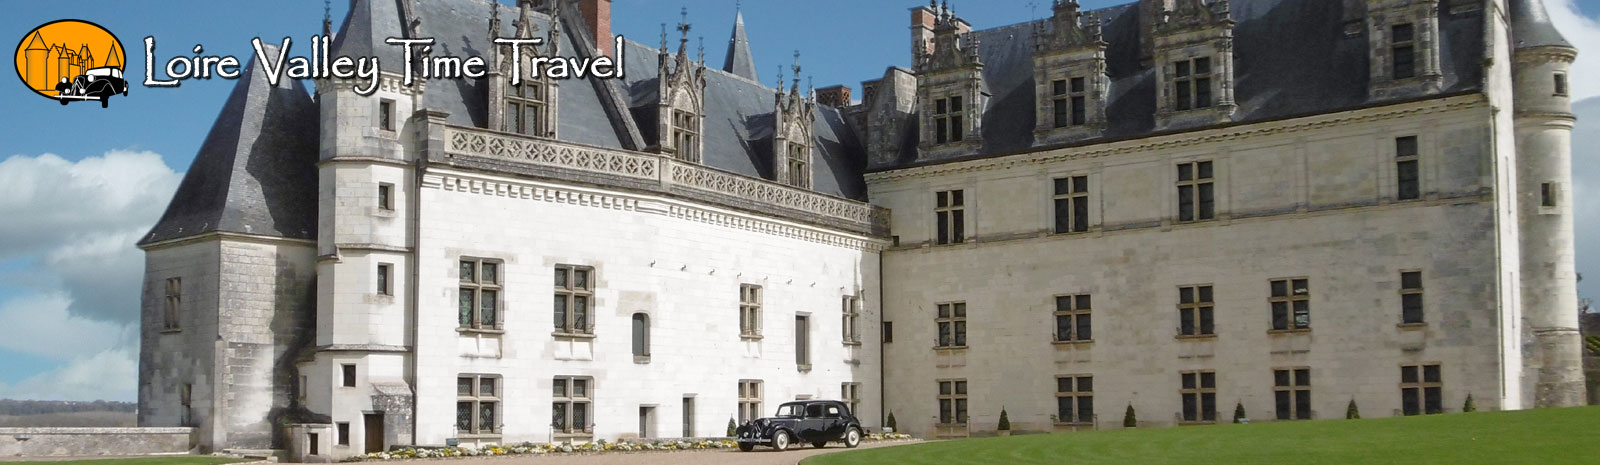 Loire Valley Time Travel